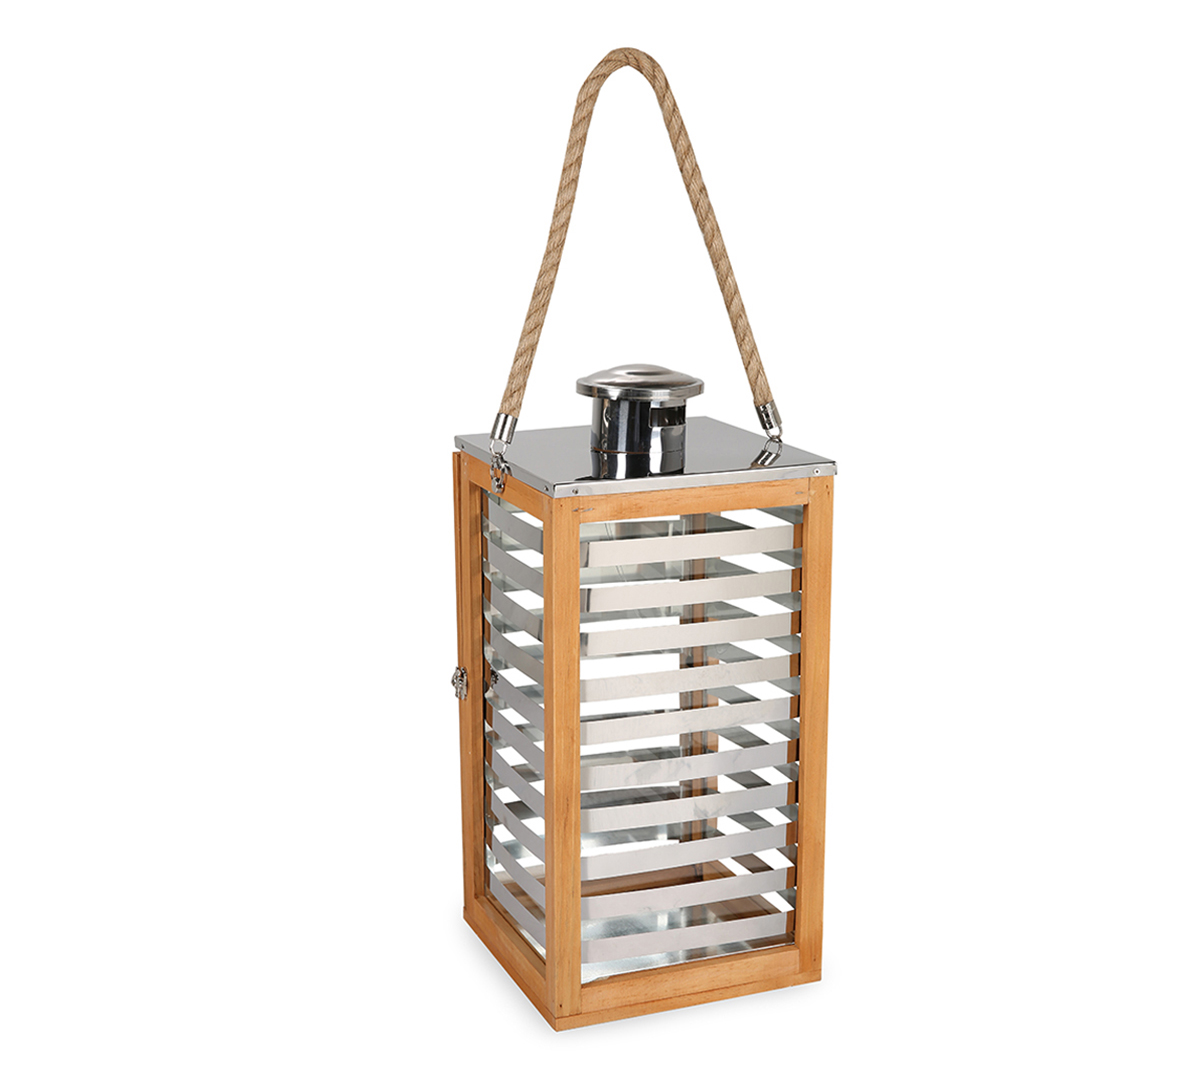 LS Wooden & S.S Lantern With Rope Small